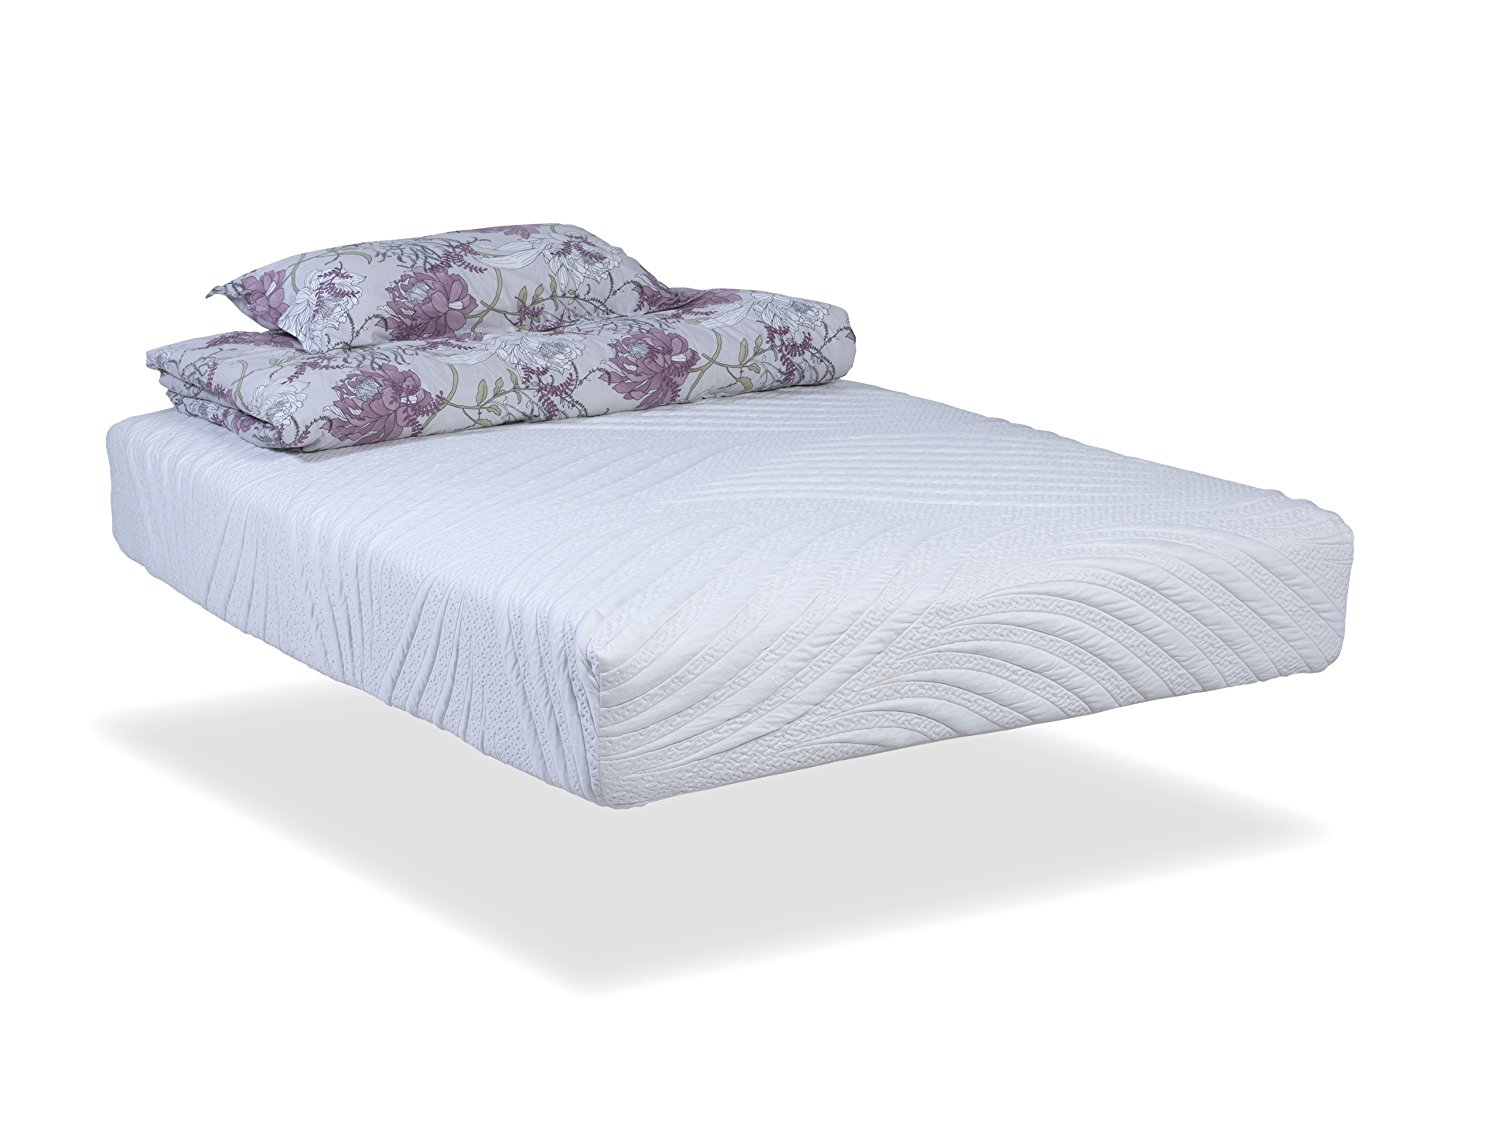 Foam Or Latex Mattresses Best Latex Mattresses Reviewed Top 10 Comparison And Buyer Guide